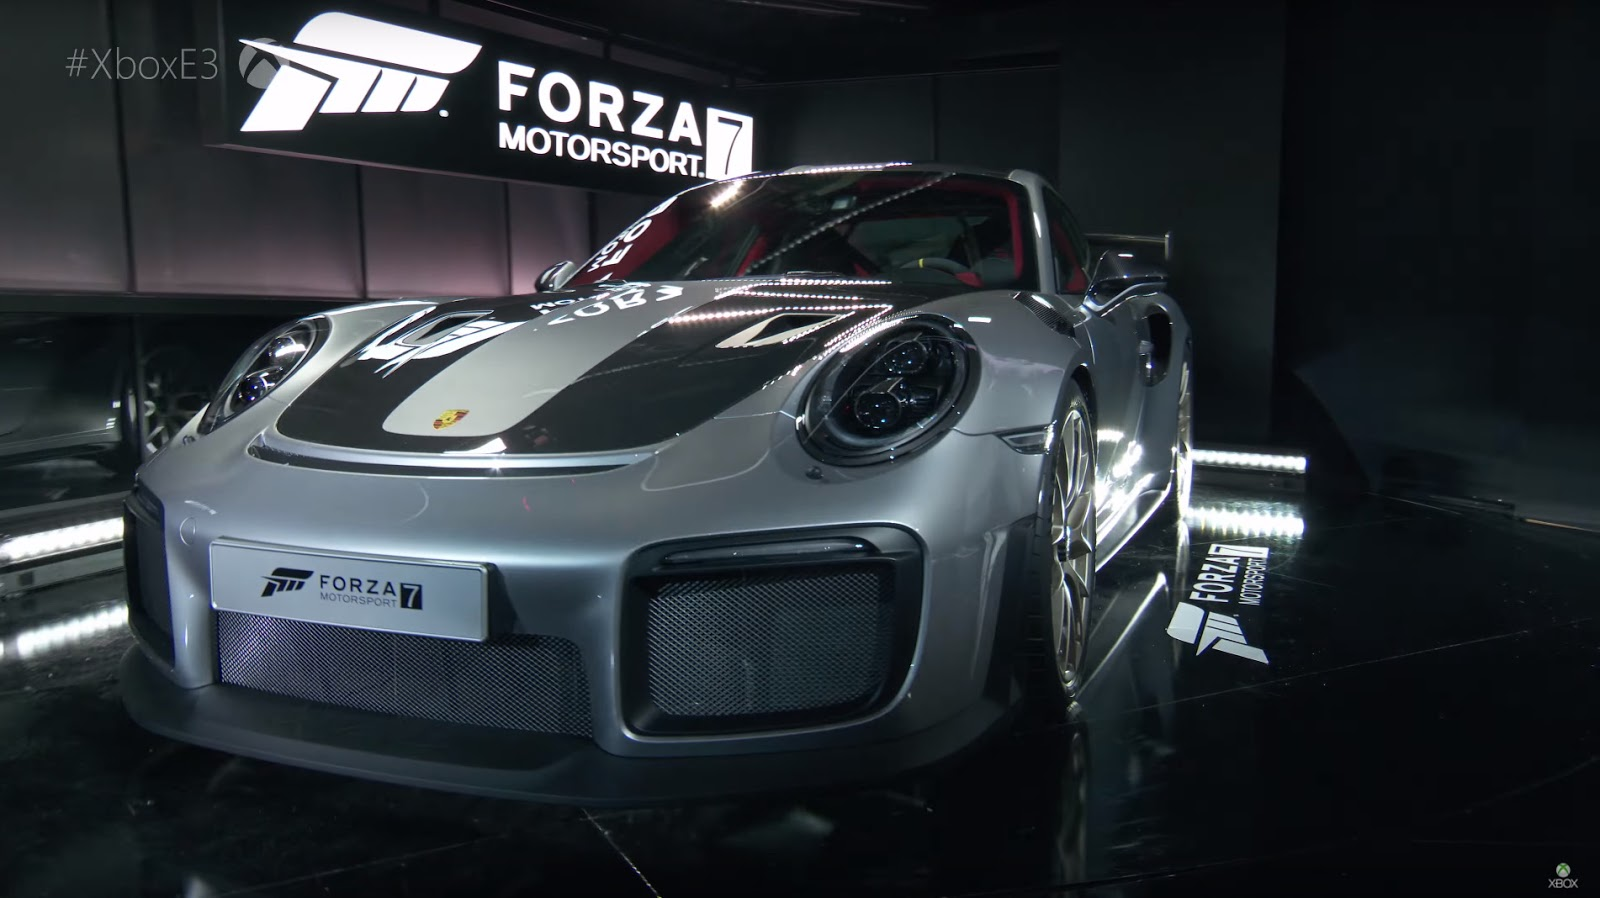 2018 porsche 911 gt2 rs unveiled at e3 gaming convention. Black Bedroom Furniture Sets. Home Design Ideas